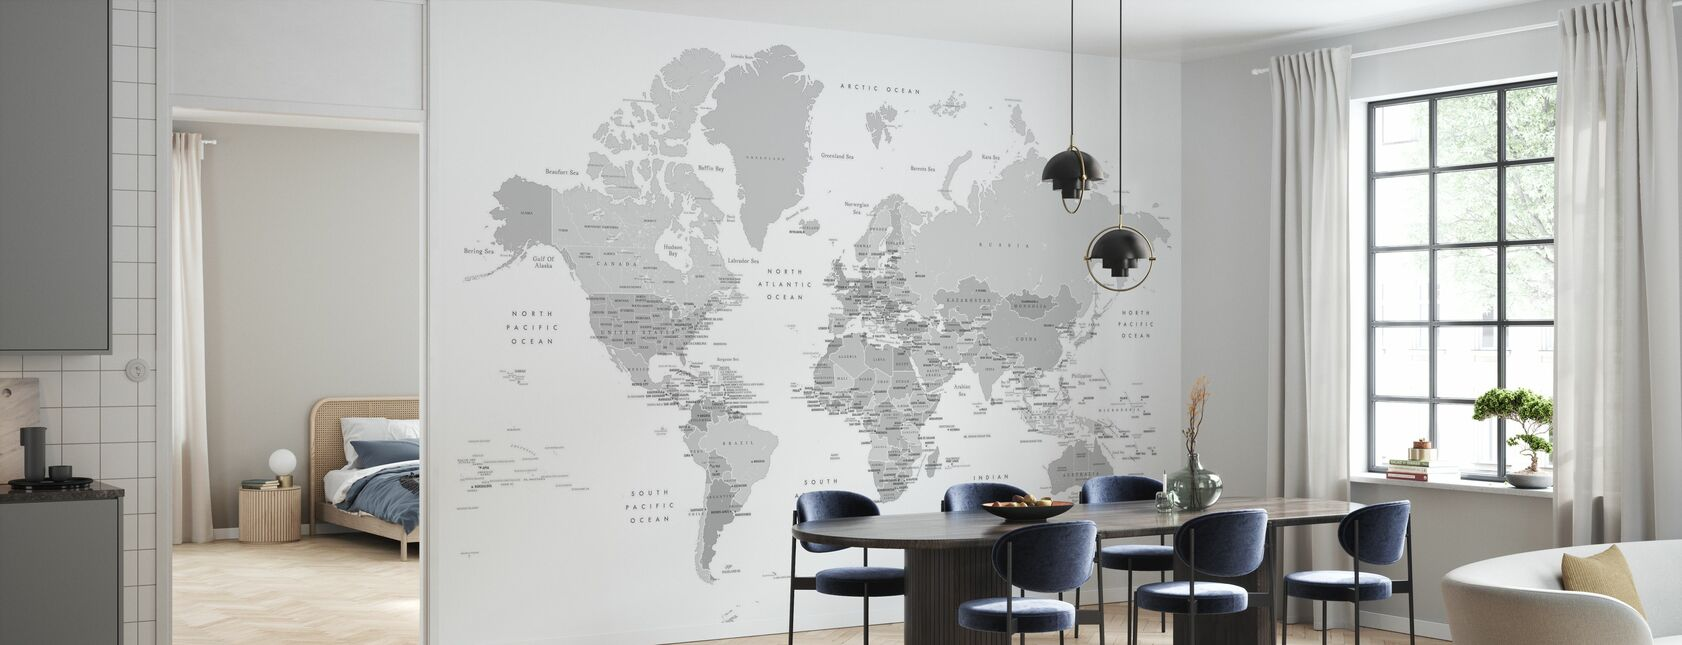 World Map with Capitals - Wallpaper - Kitchen